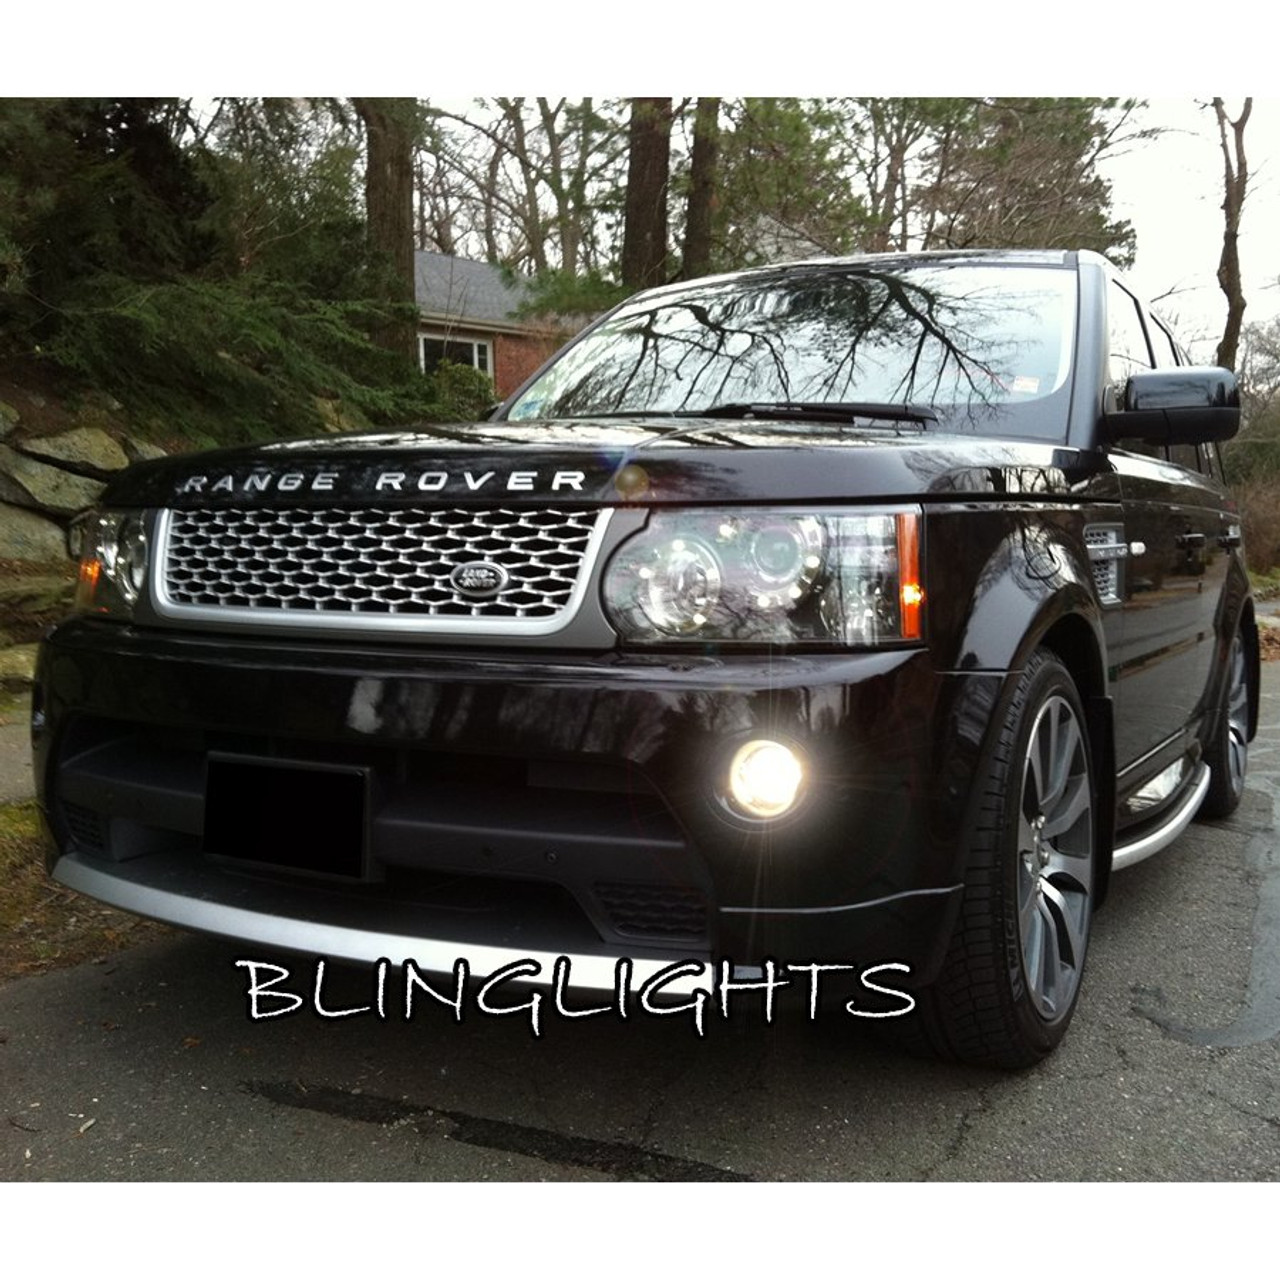 2010 2011 2012 Range Rover Sport Supercharged Xenon Fog Lamps Driving Lights Foglamps Foglights Kit